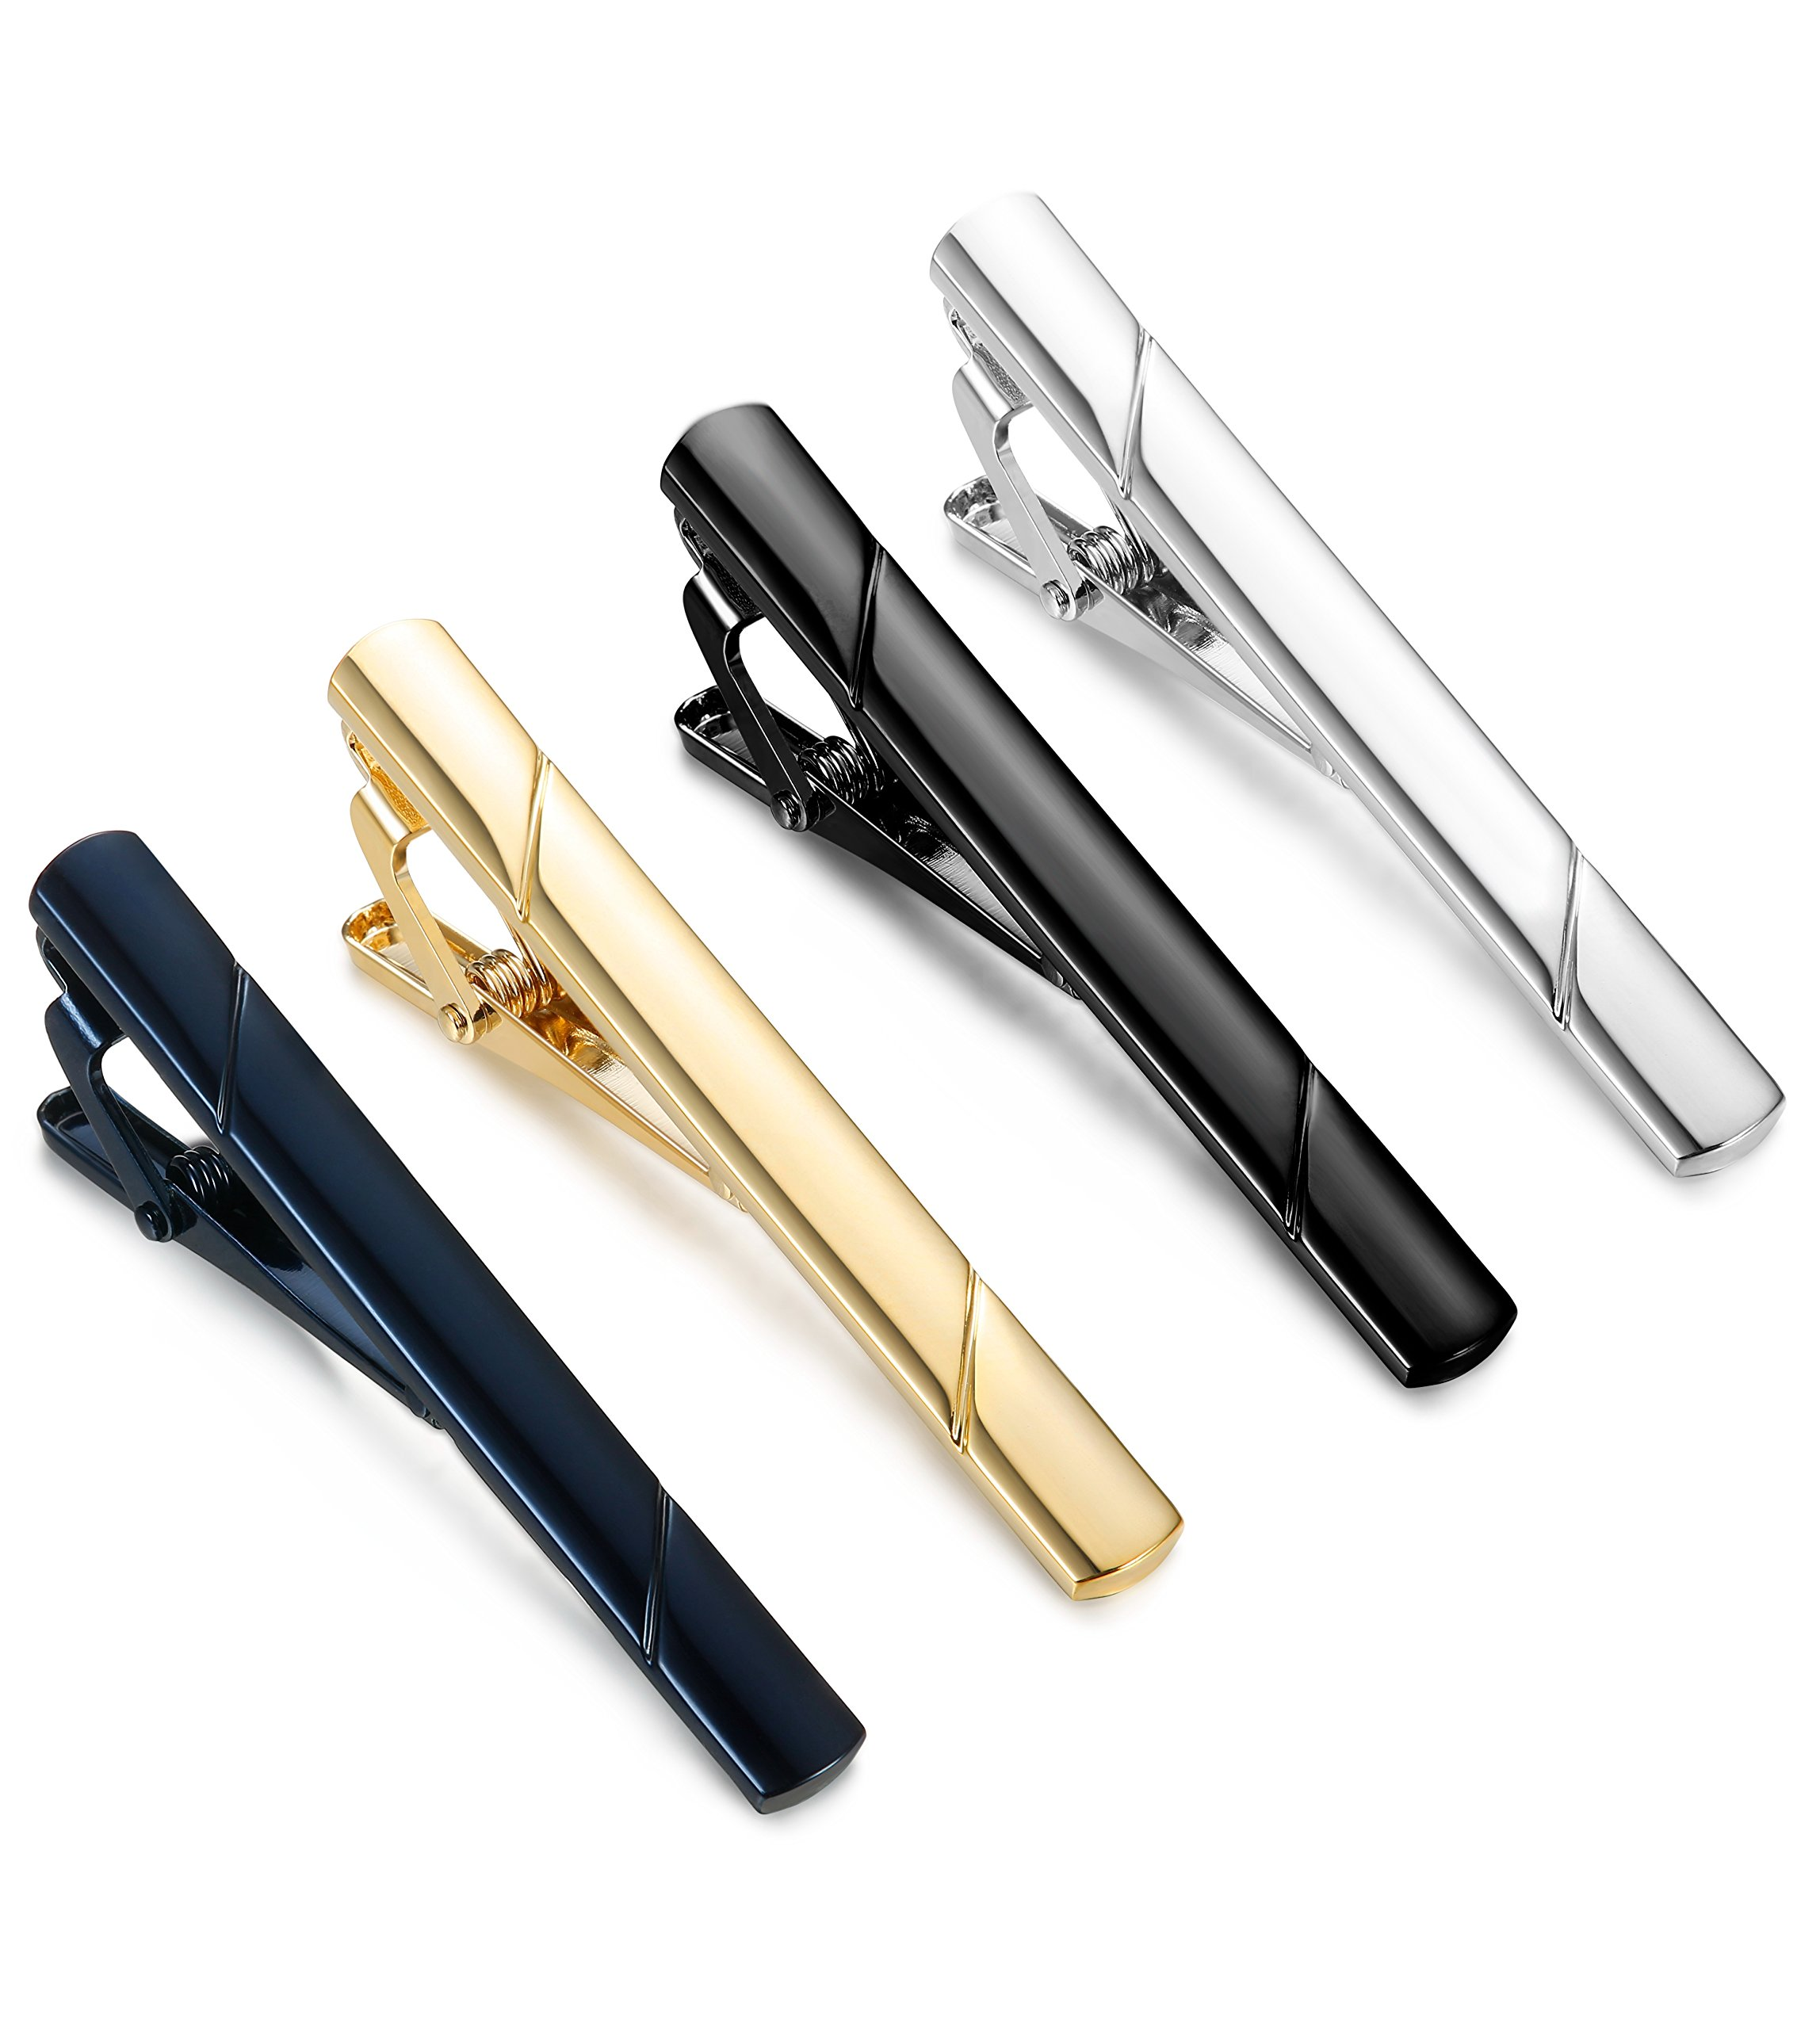 Jstyle 4 Pcs Tie Clips for Men Tie Bar Clip Set for Regular Ties Necktie Wedding Business Clips by Jstyle (Image #1)